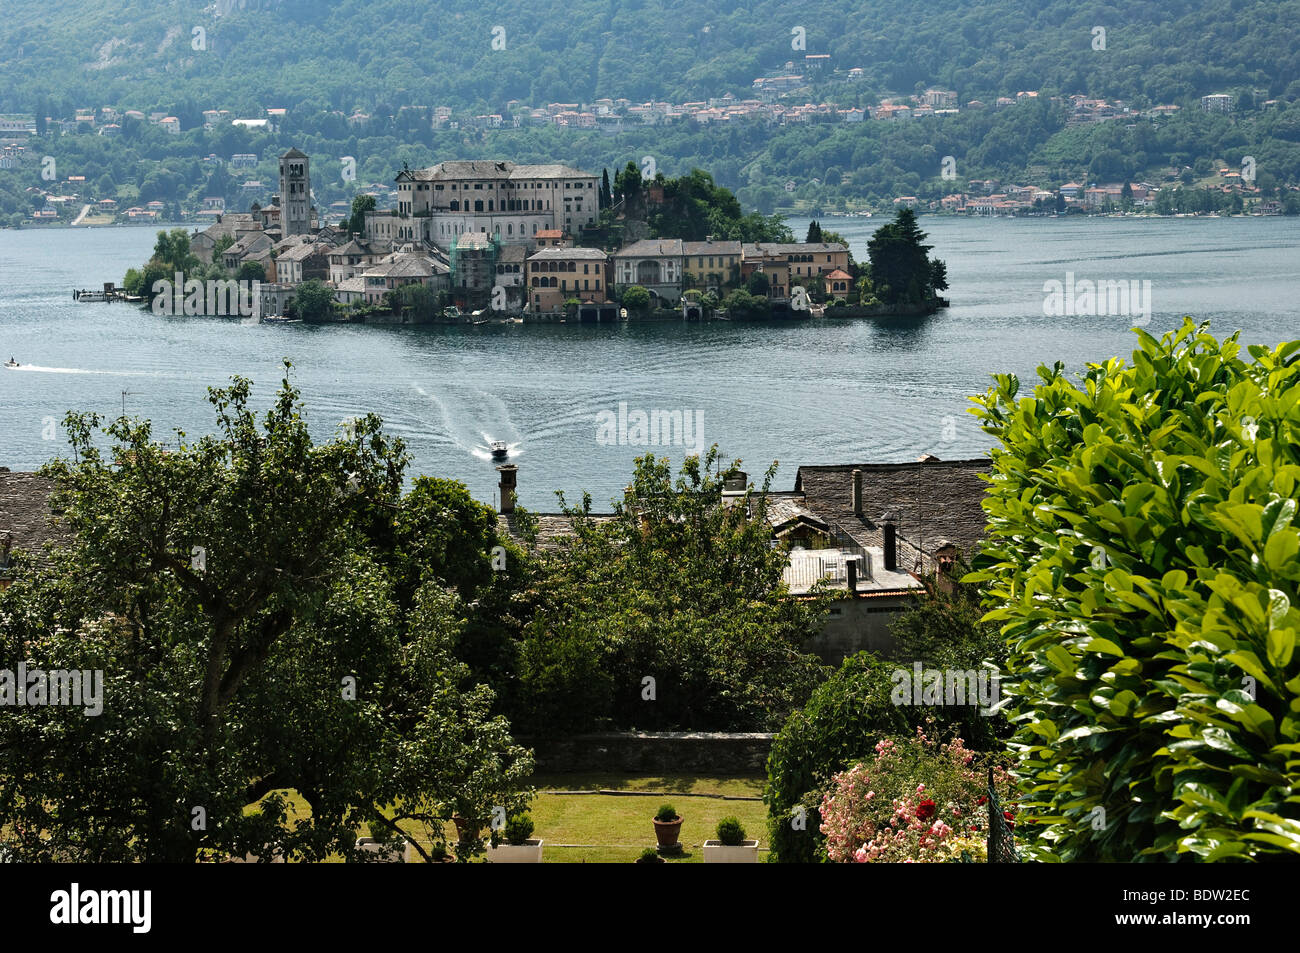 Island of San Giulio on Lake Orta, Lago d'Orta, Piedmont, Italy, Europe Stock Photo